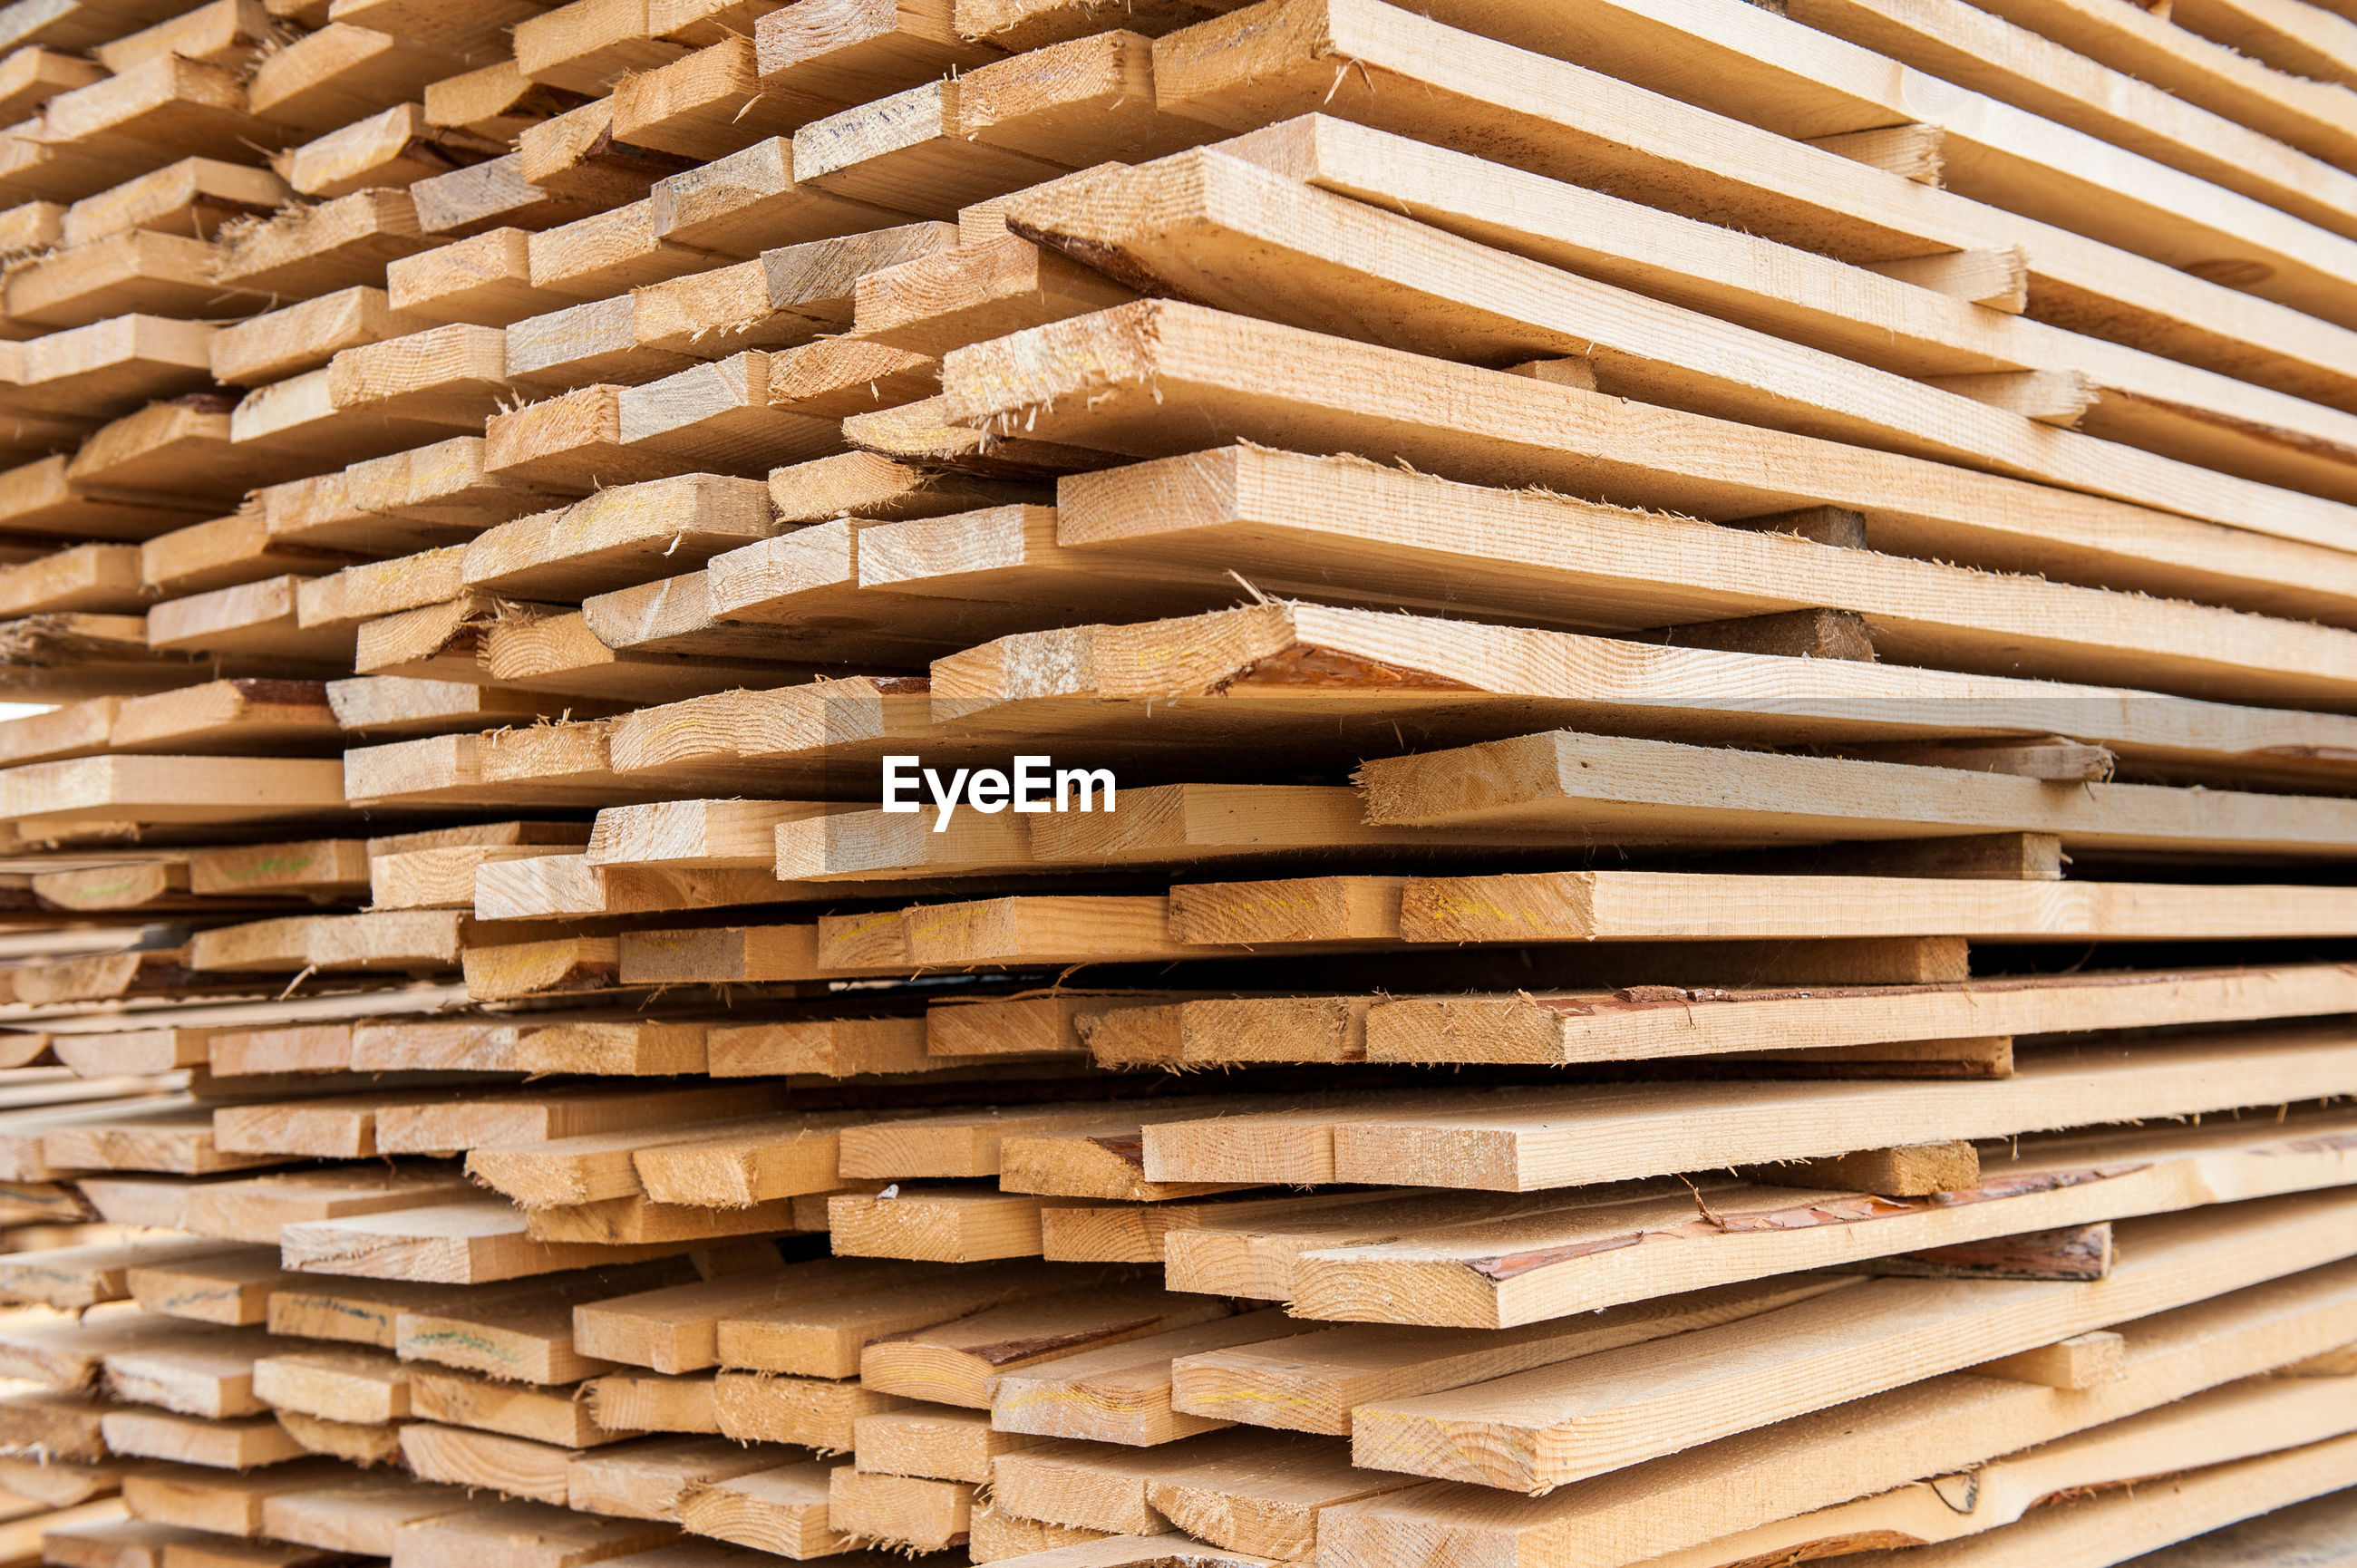 Full frame shot of stack of firewood in forest